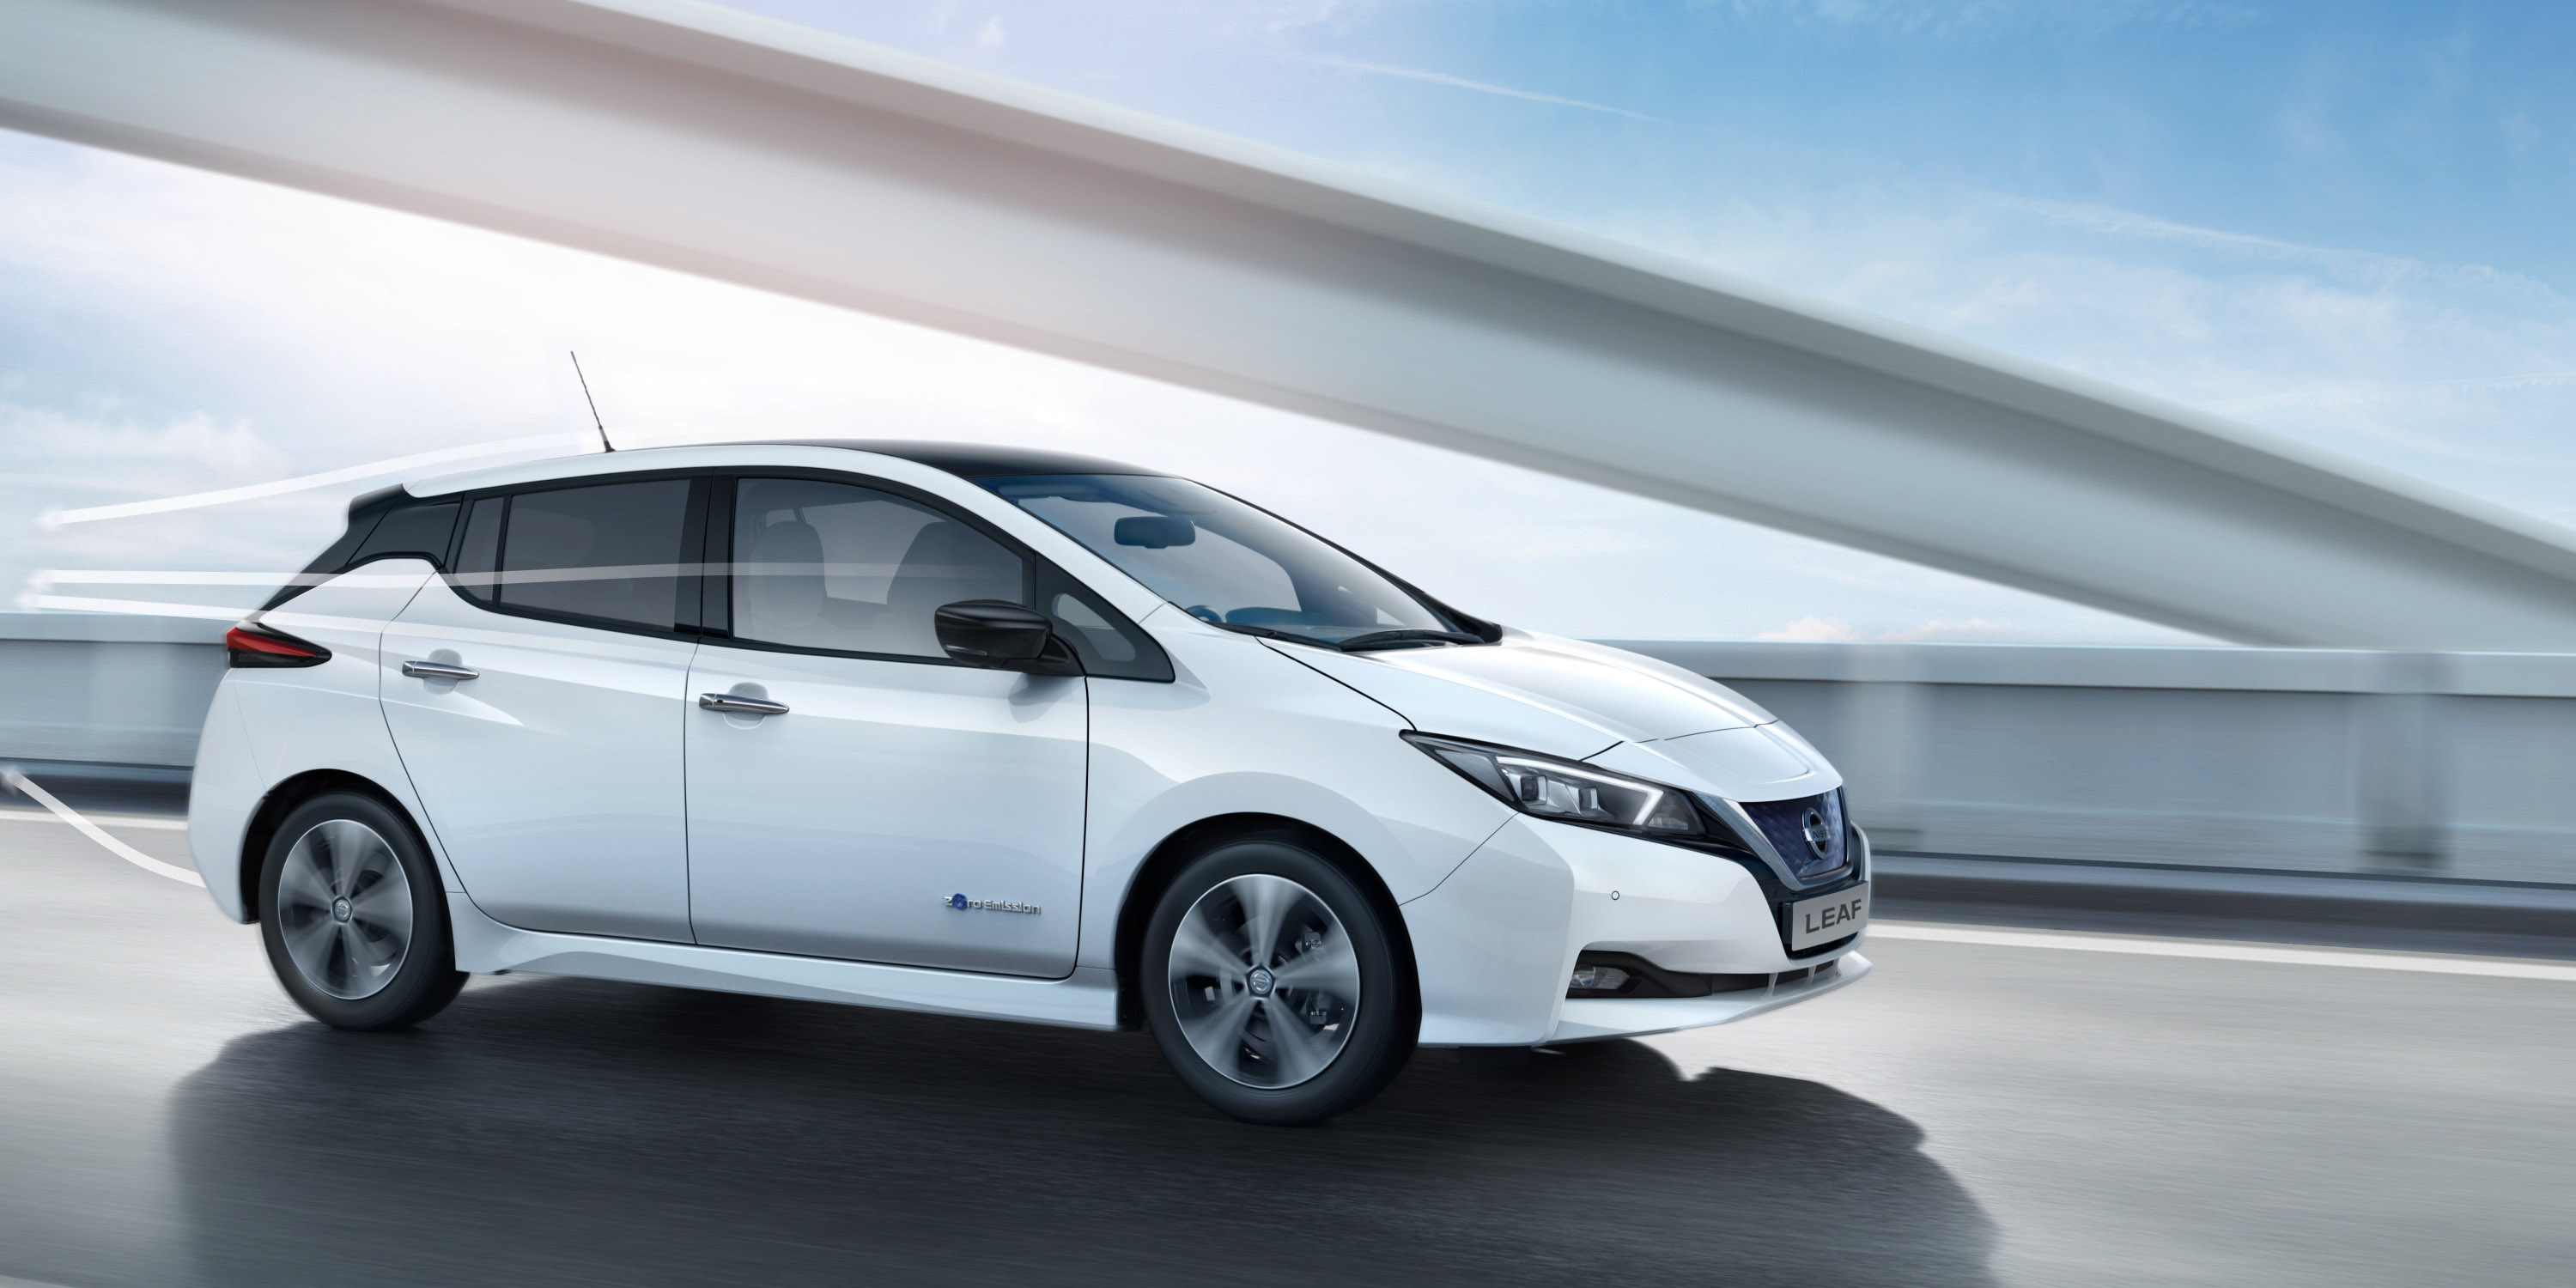 New Nissan LEAF driving on a bridge with graphic lines moving over it showing aerodynamics